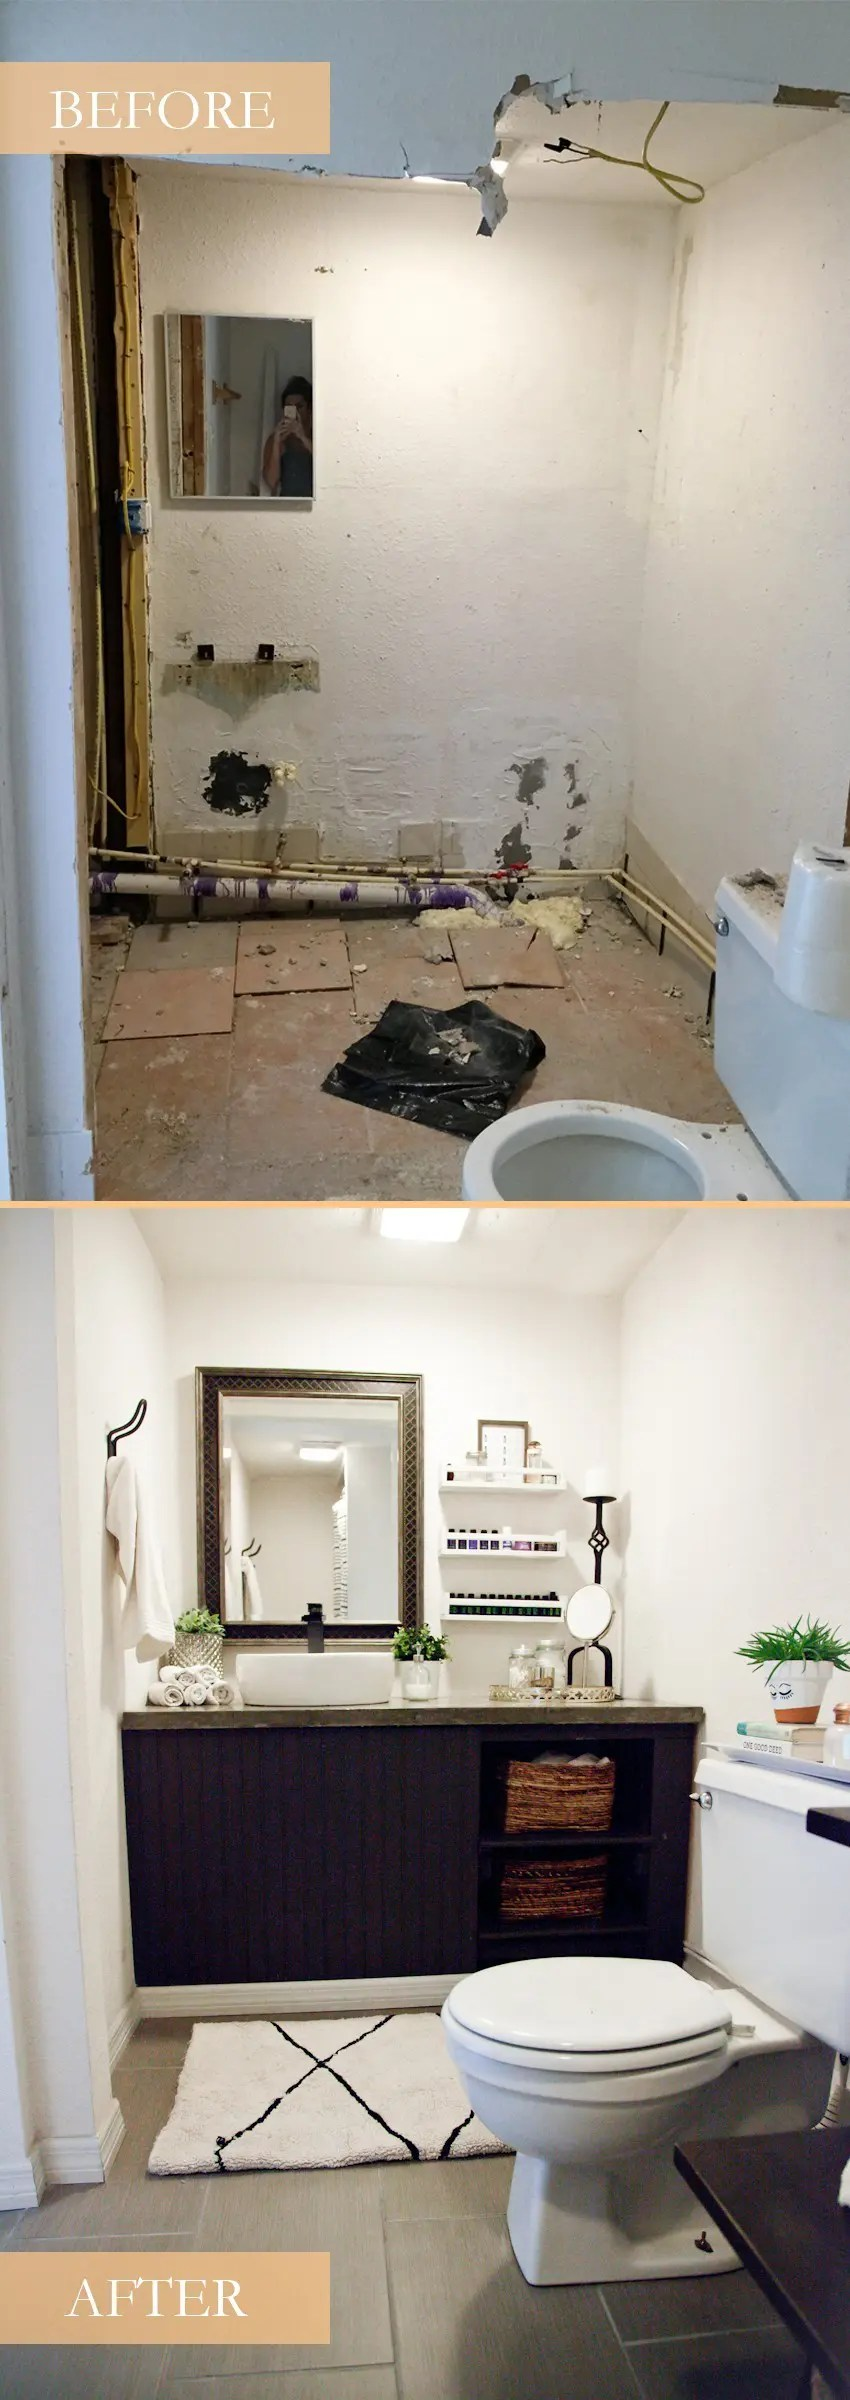 Our Light And Bright Simple Studio Bathroom Remodel A Before After